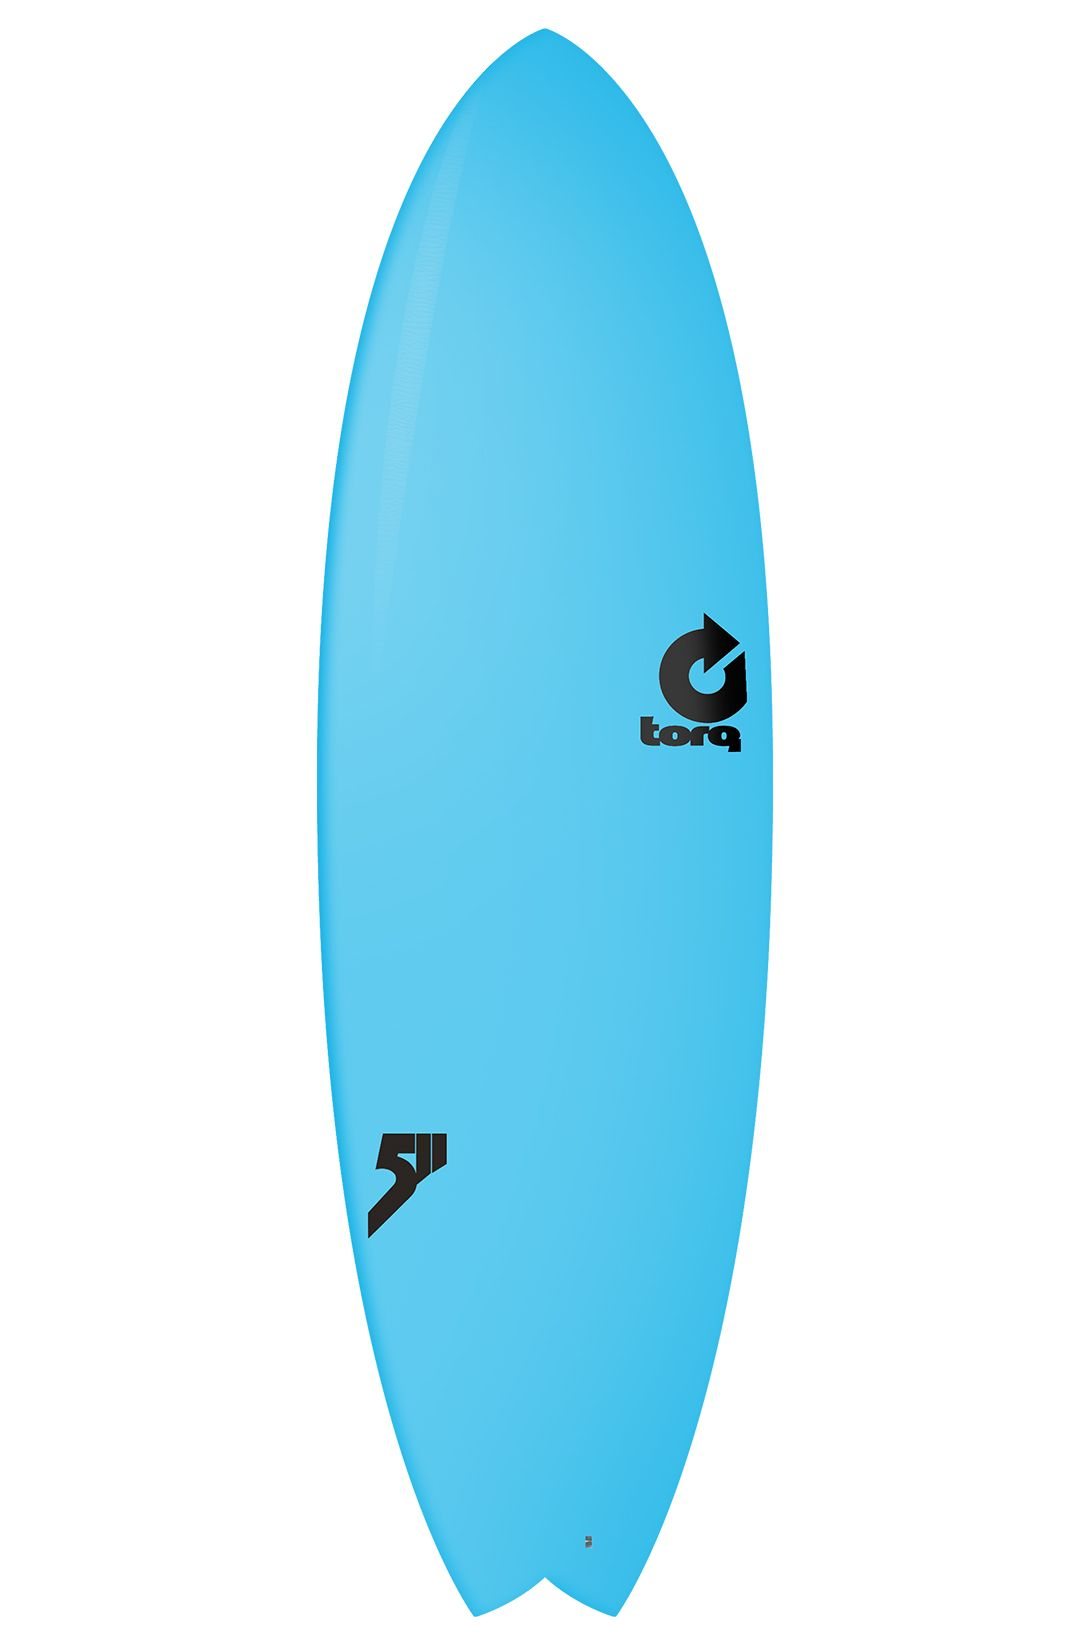 Torq Surf Board 5'11 MOD FISH BLUE SOFT DECK Swallow Tail - Color Futures Multisystem 5ft11